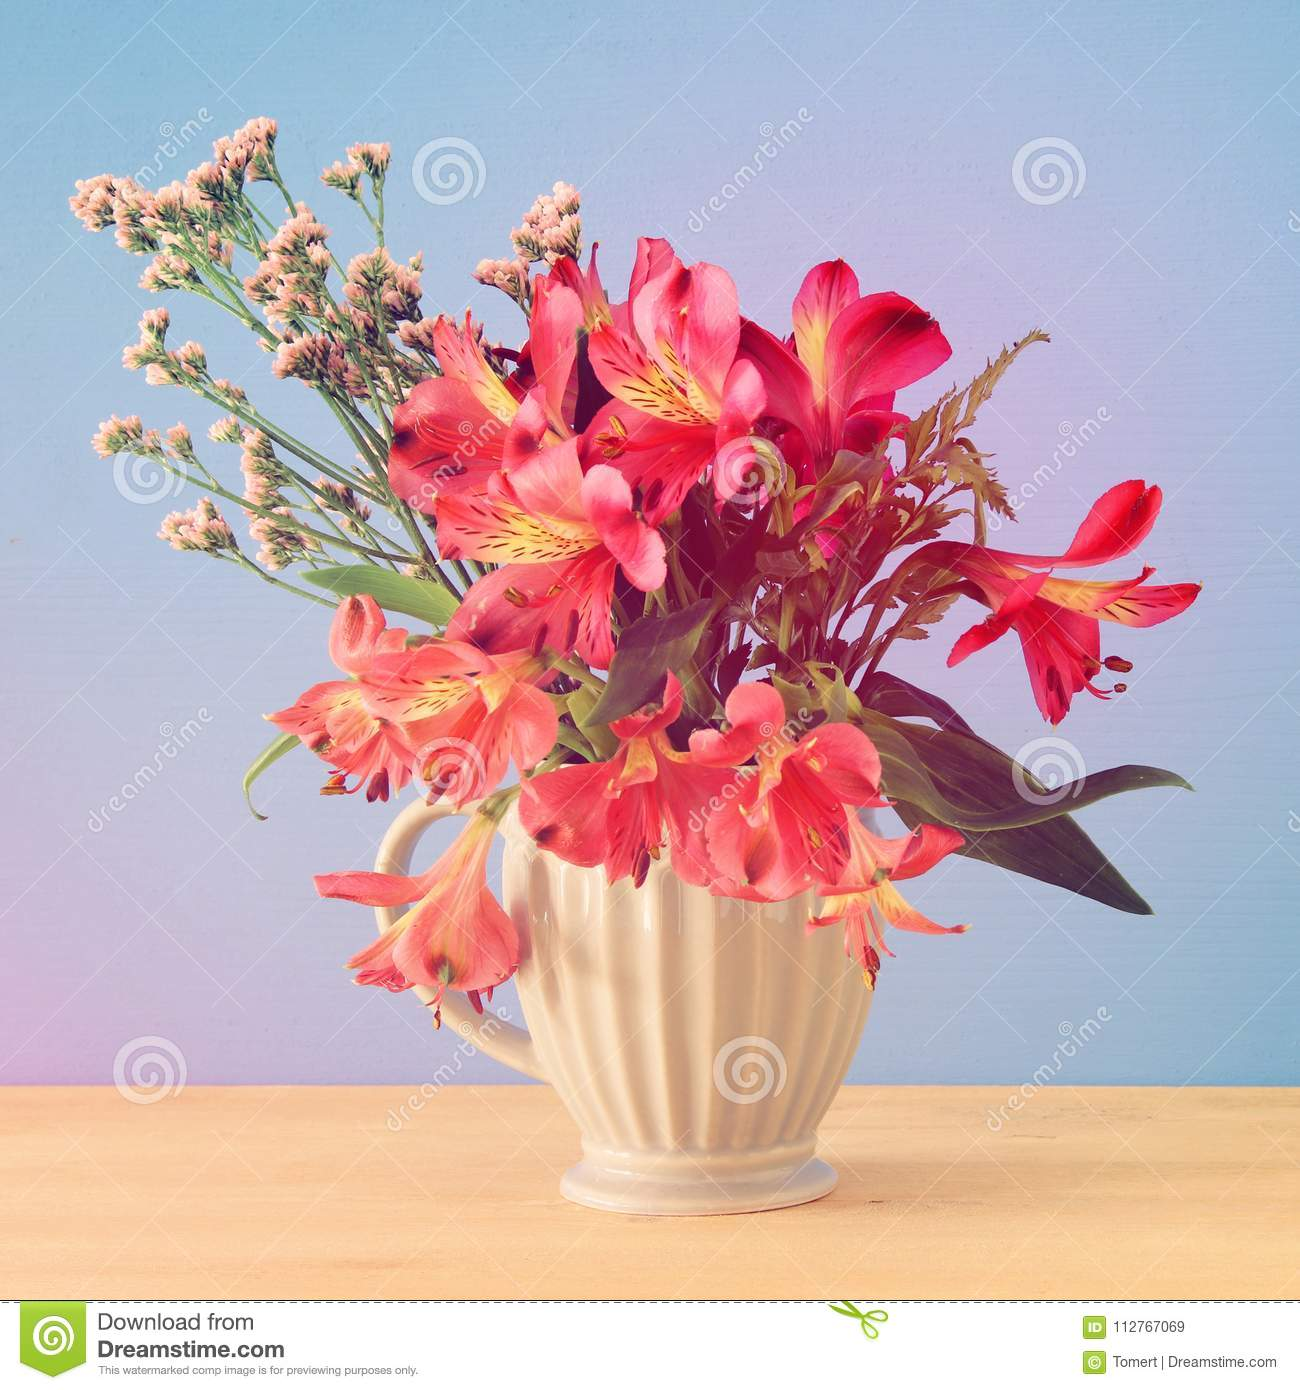 Summer Bouquet Of Red Flowers In The Vase Over Wooden Table And Blue ...